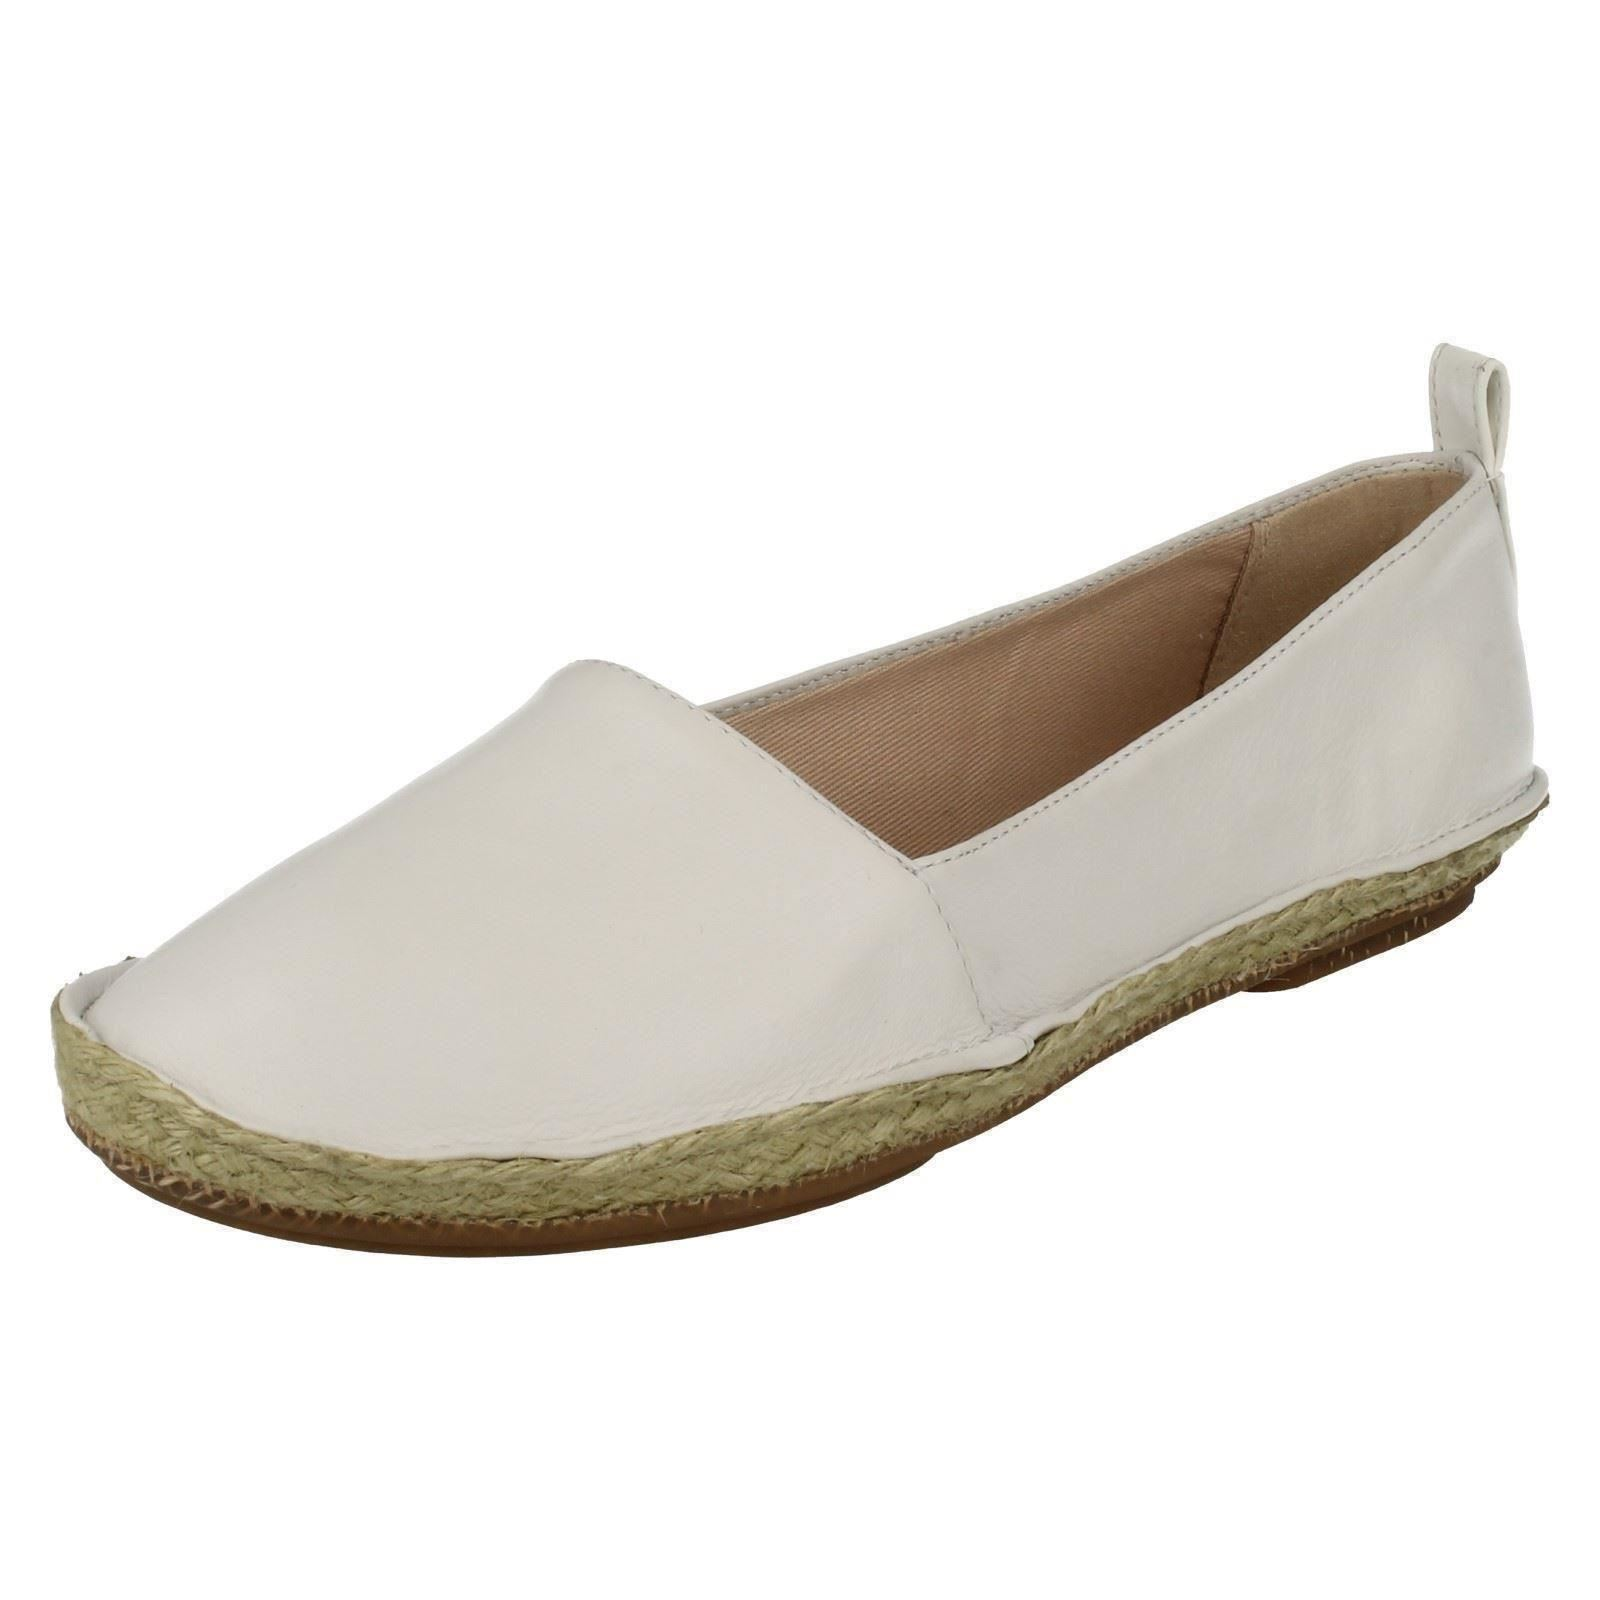 858aa350e4a Ladies Clarks Casual Flat Slip on Shoes Clovelly Sun White UK 8 D. About  this product. Picture 1 of 9; Picture 2 of 9 ...